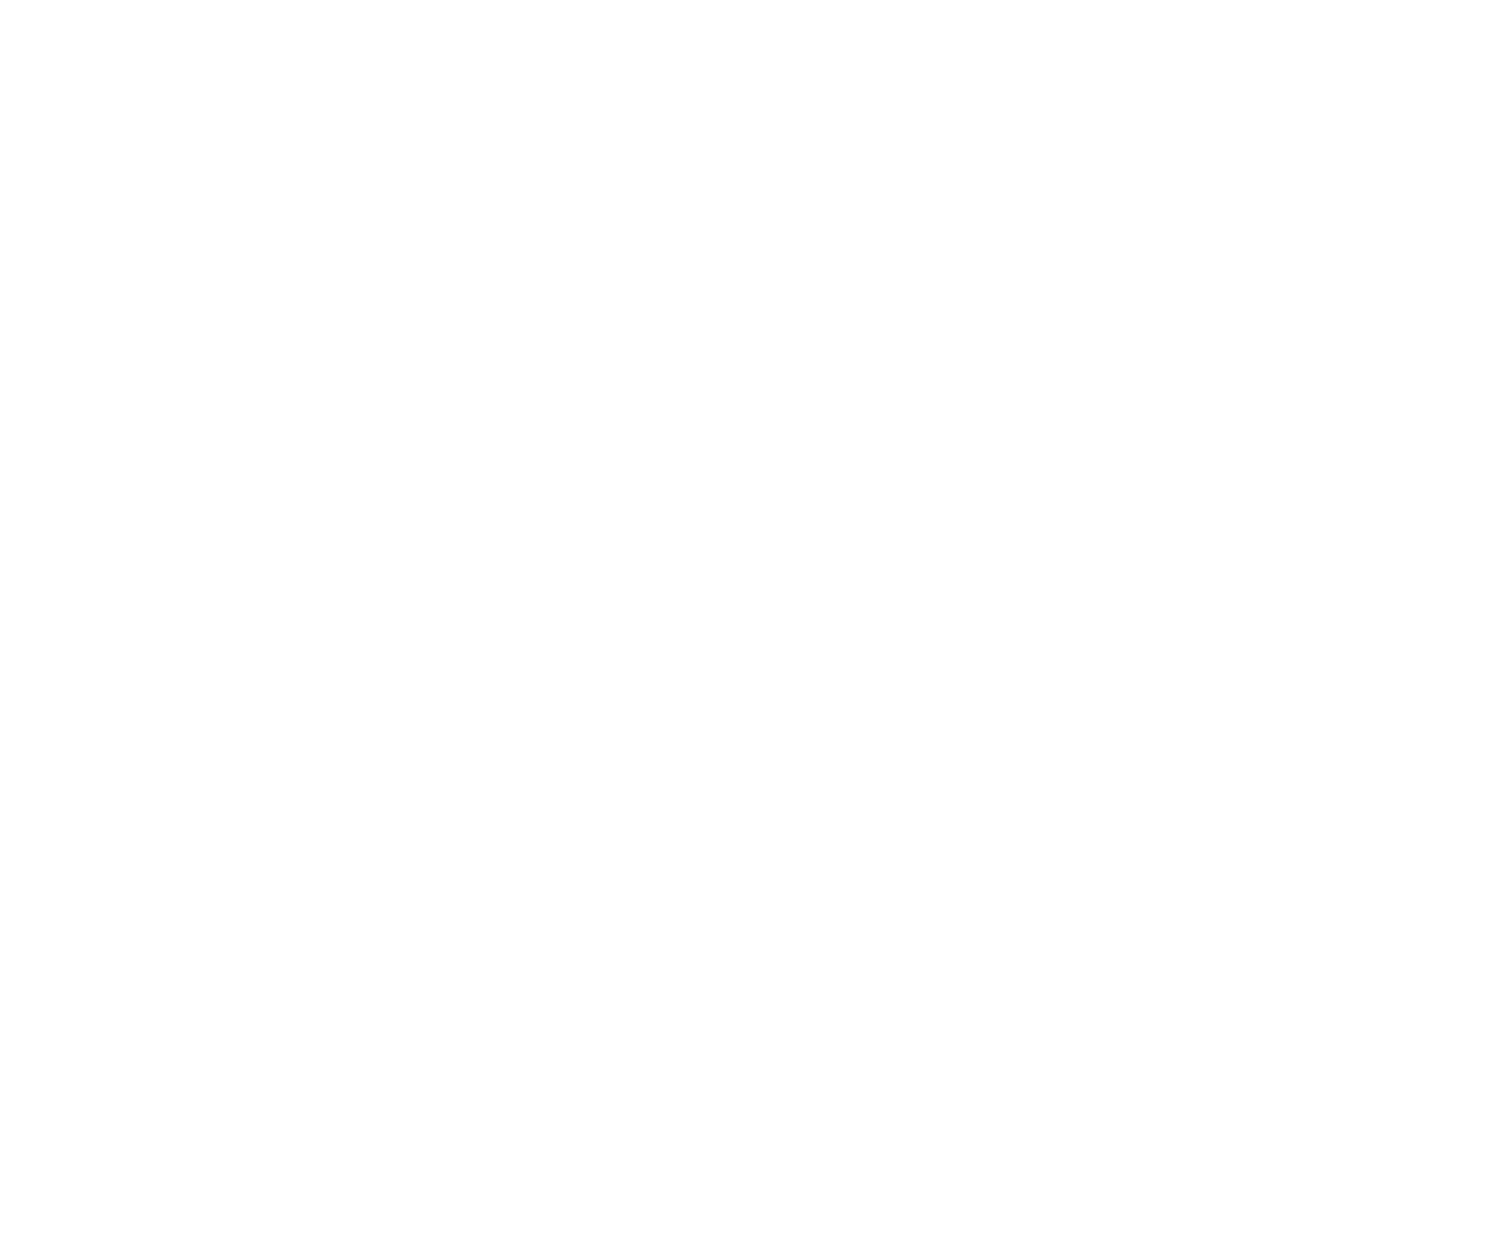 Treehouse Global Ventures